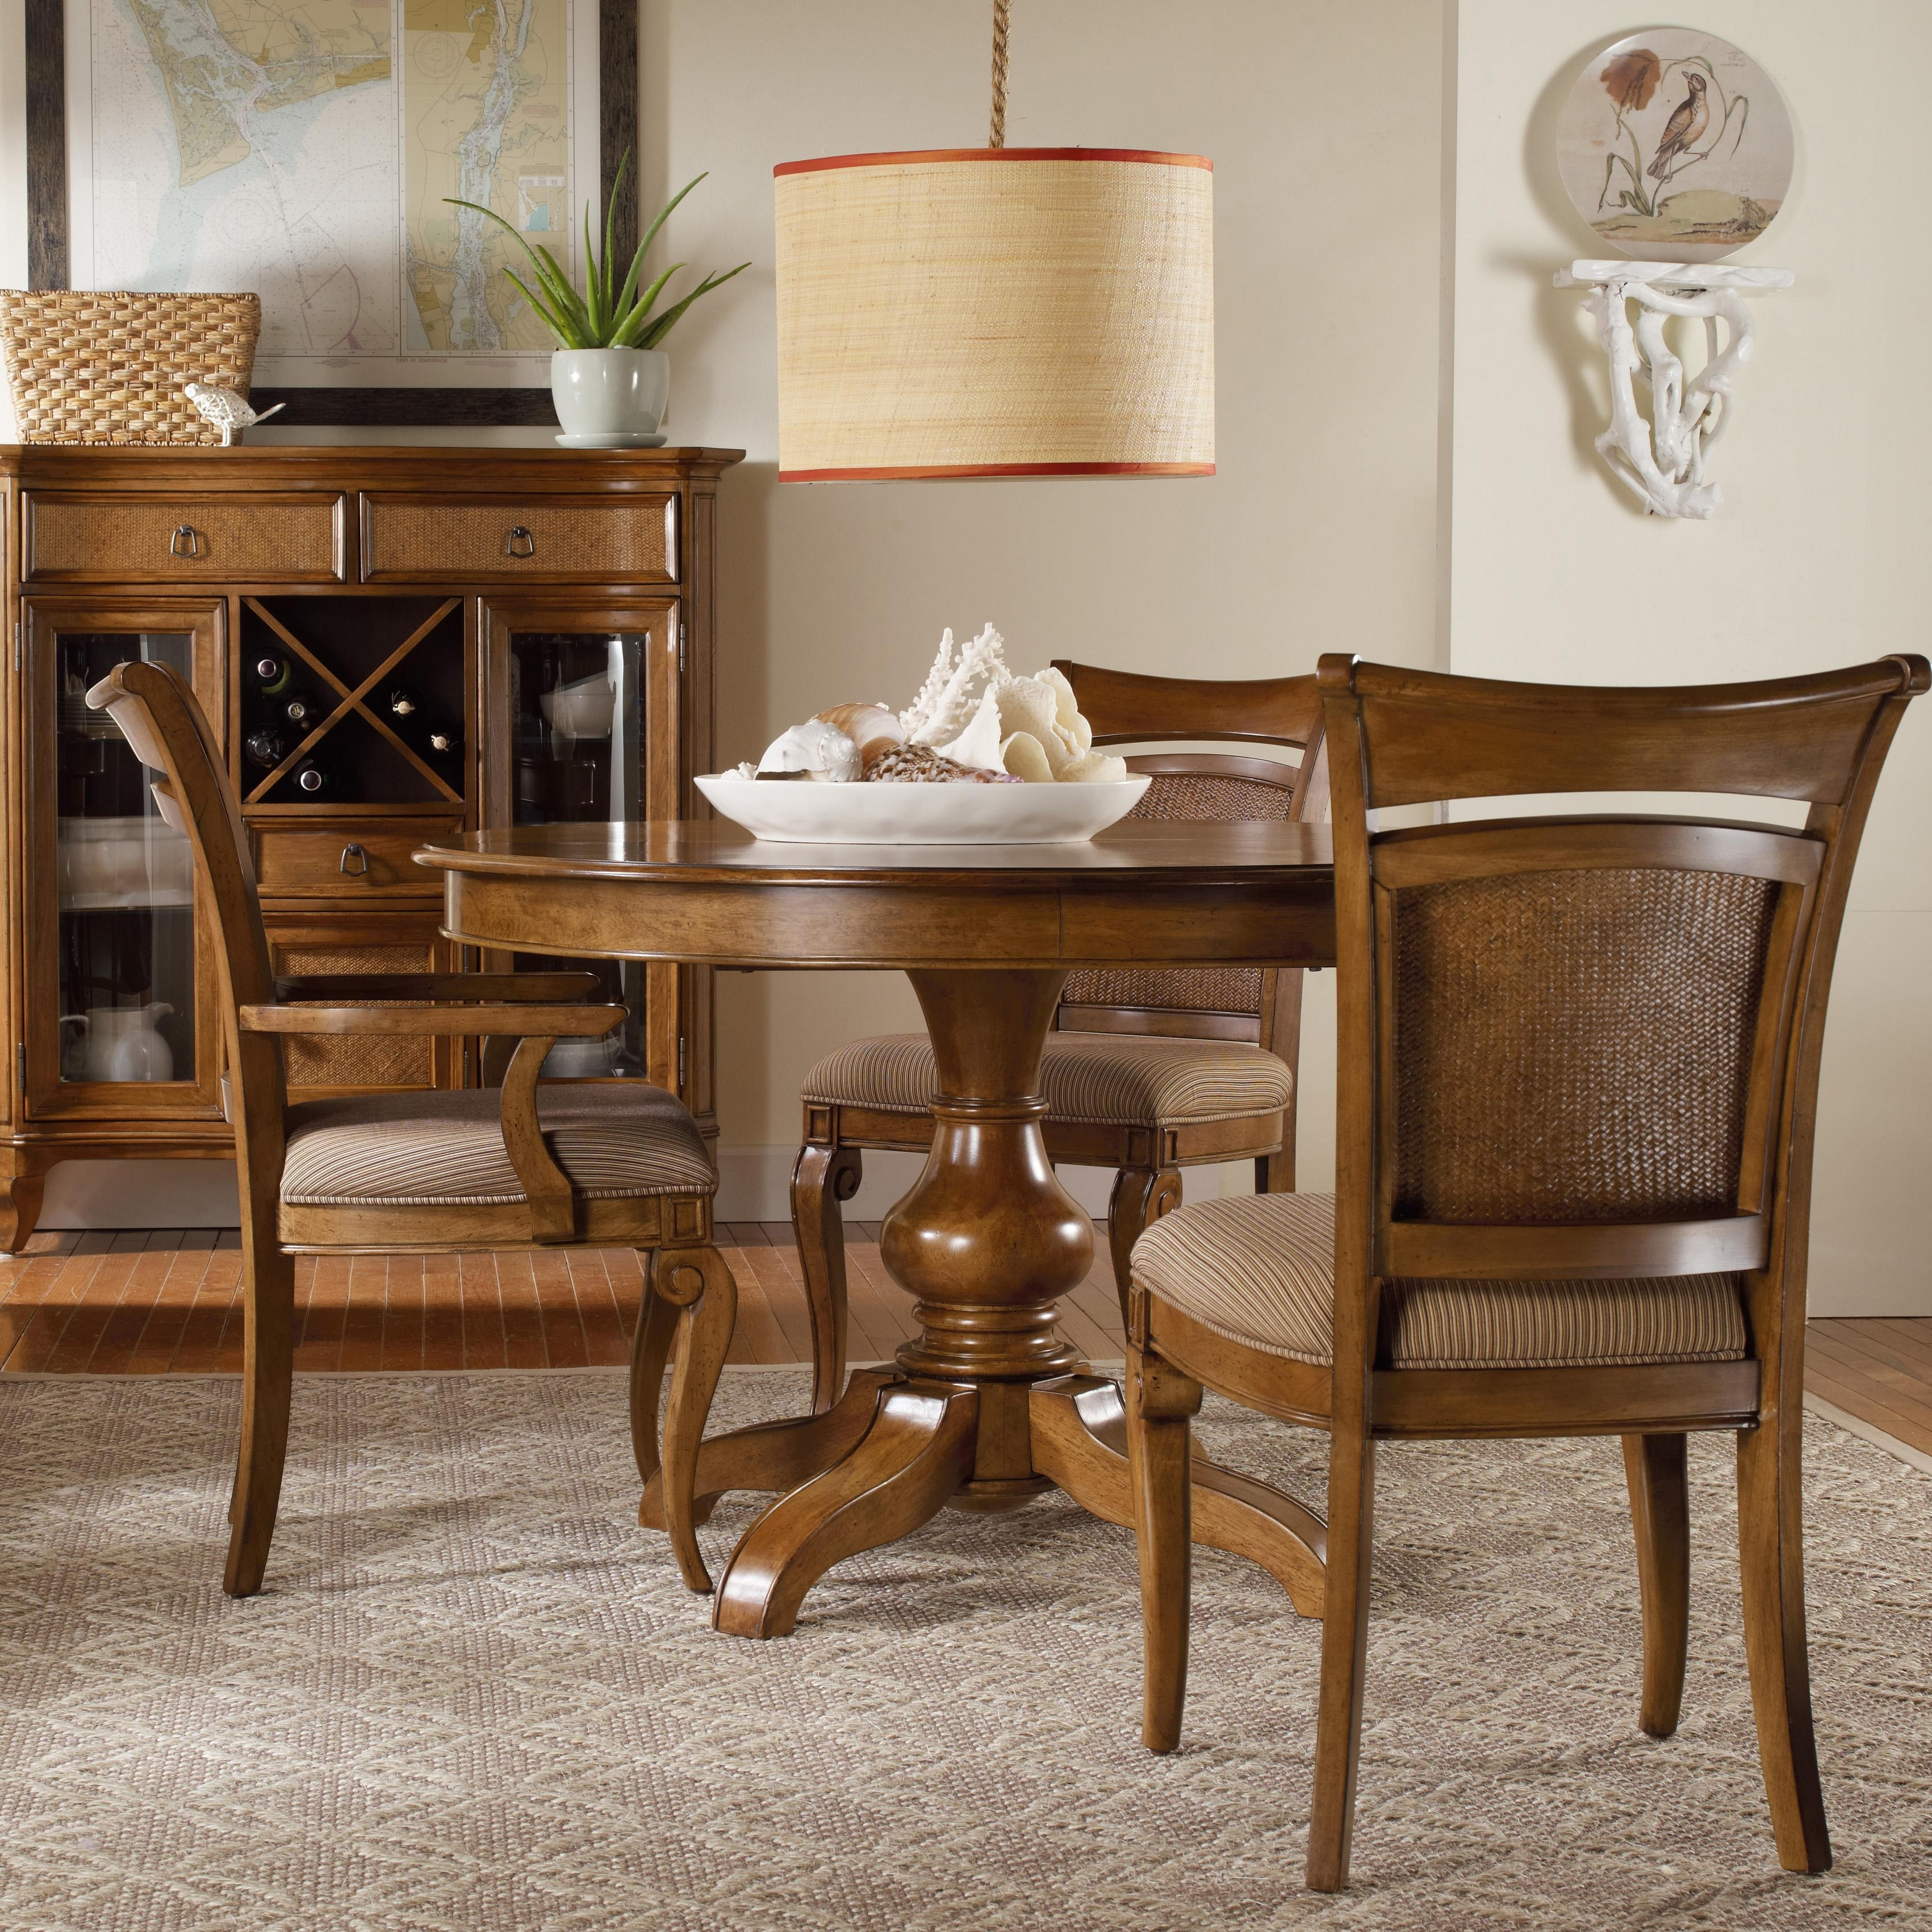 Sofa Chairs With Dining Table Pertaining To Recent Hooker Furniture Windward Pedestal Dining Table & Raffia Chairs (View 7 of 15)